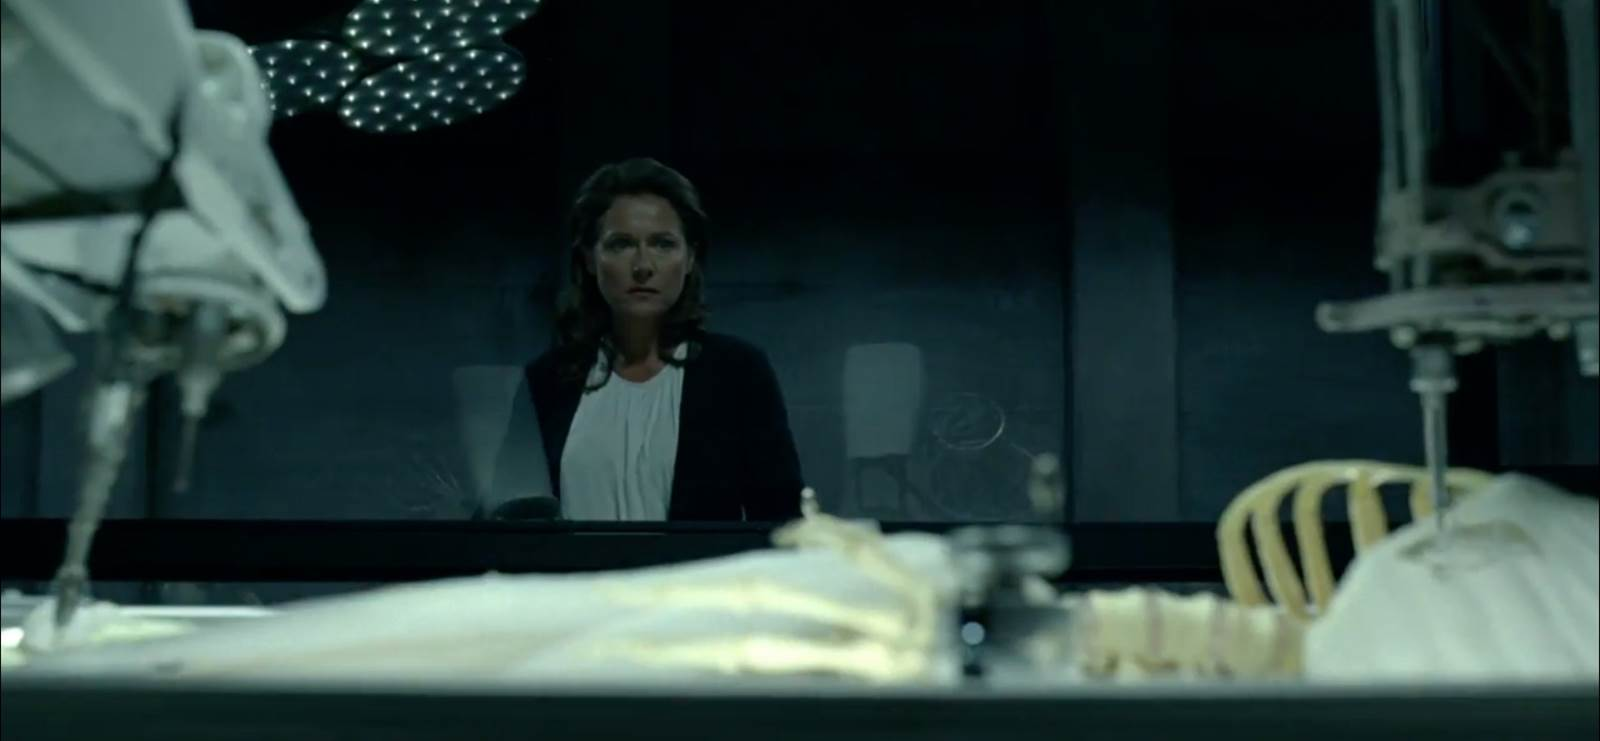 Sidse Babett Knudsen as Theresa Cullen looking at a host's creation in HBO's Westworld